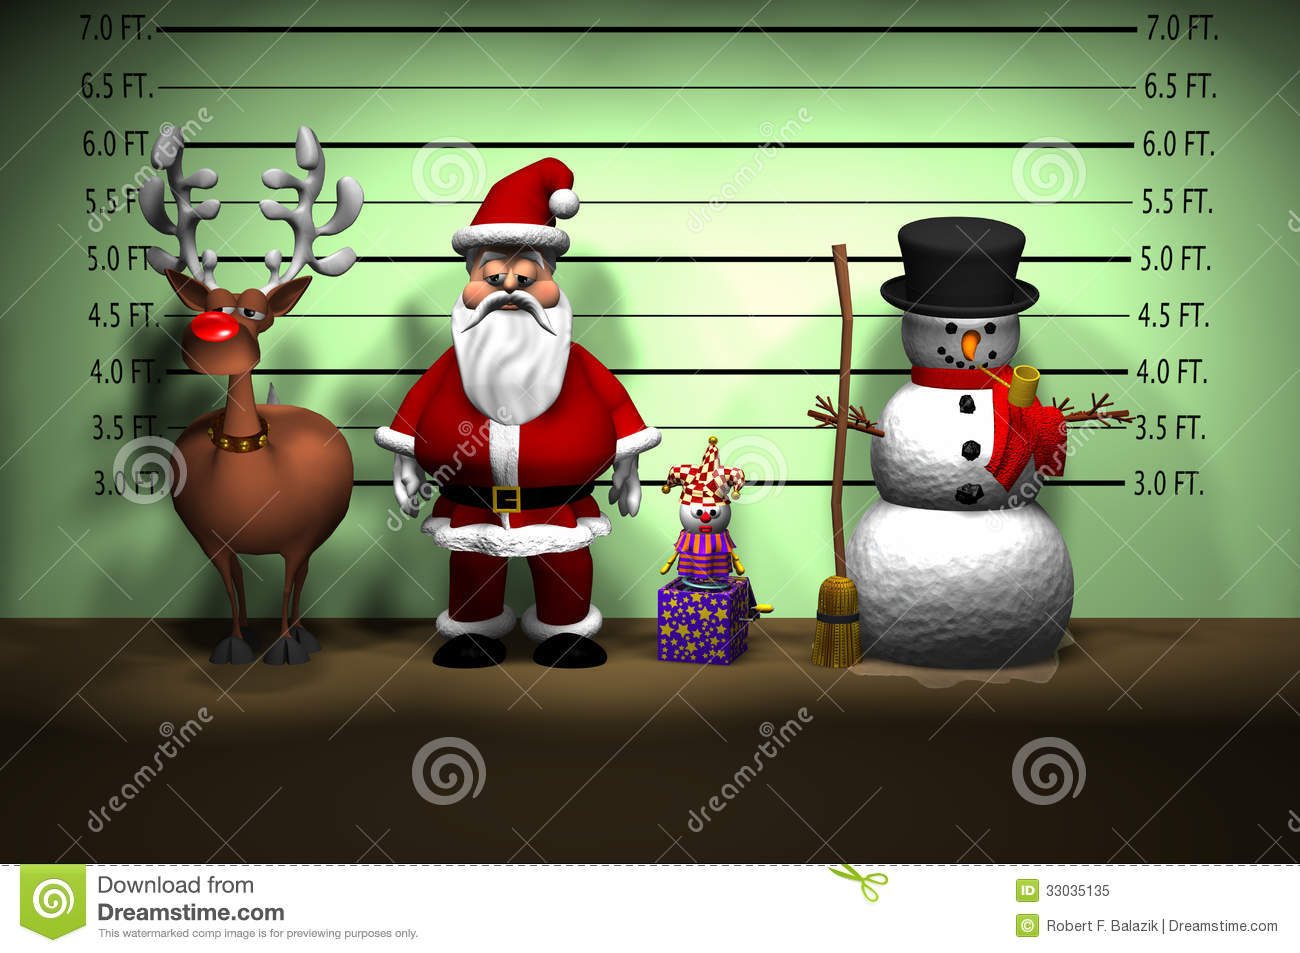 Pics photos police background police background police background - Funny Police Christmas Cartoons Viewing Gallery